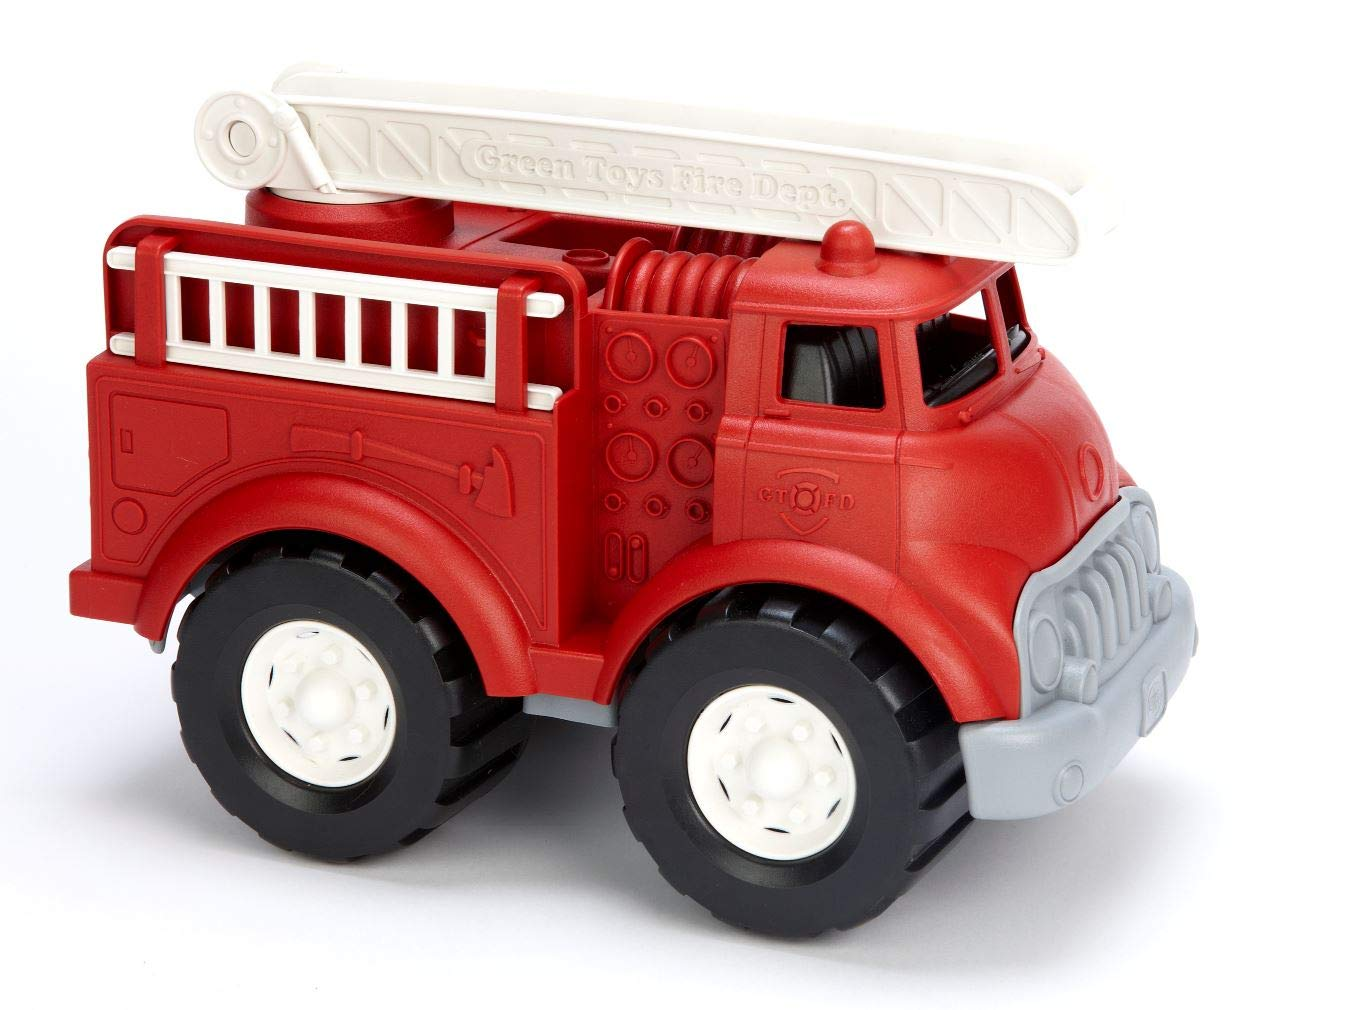 Green Toys Fire Truck - Frustration Free Packaging, Red by Green Toys